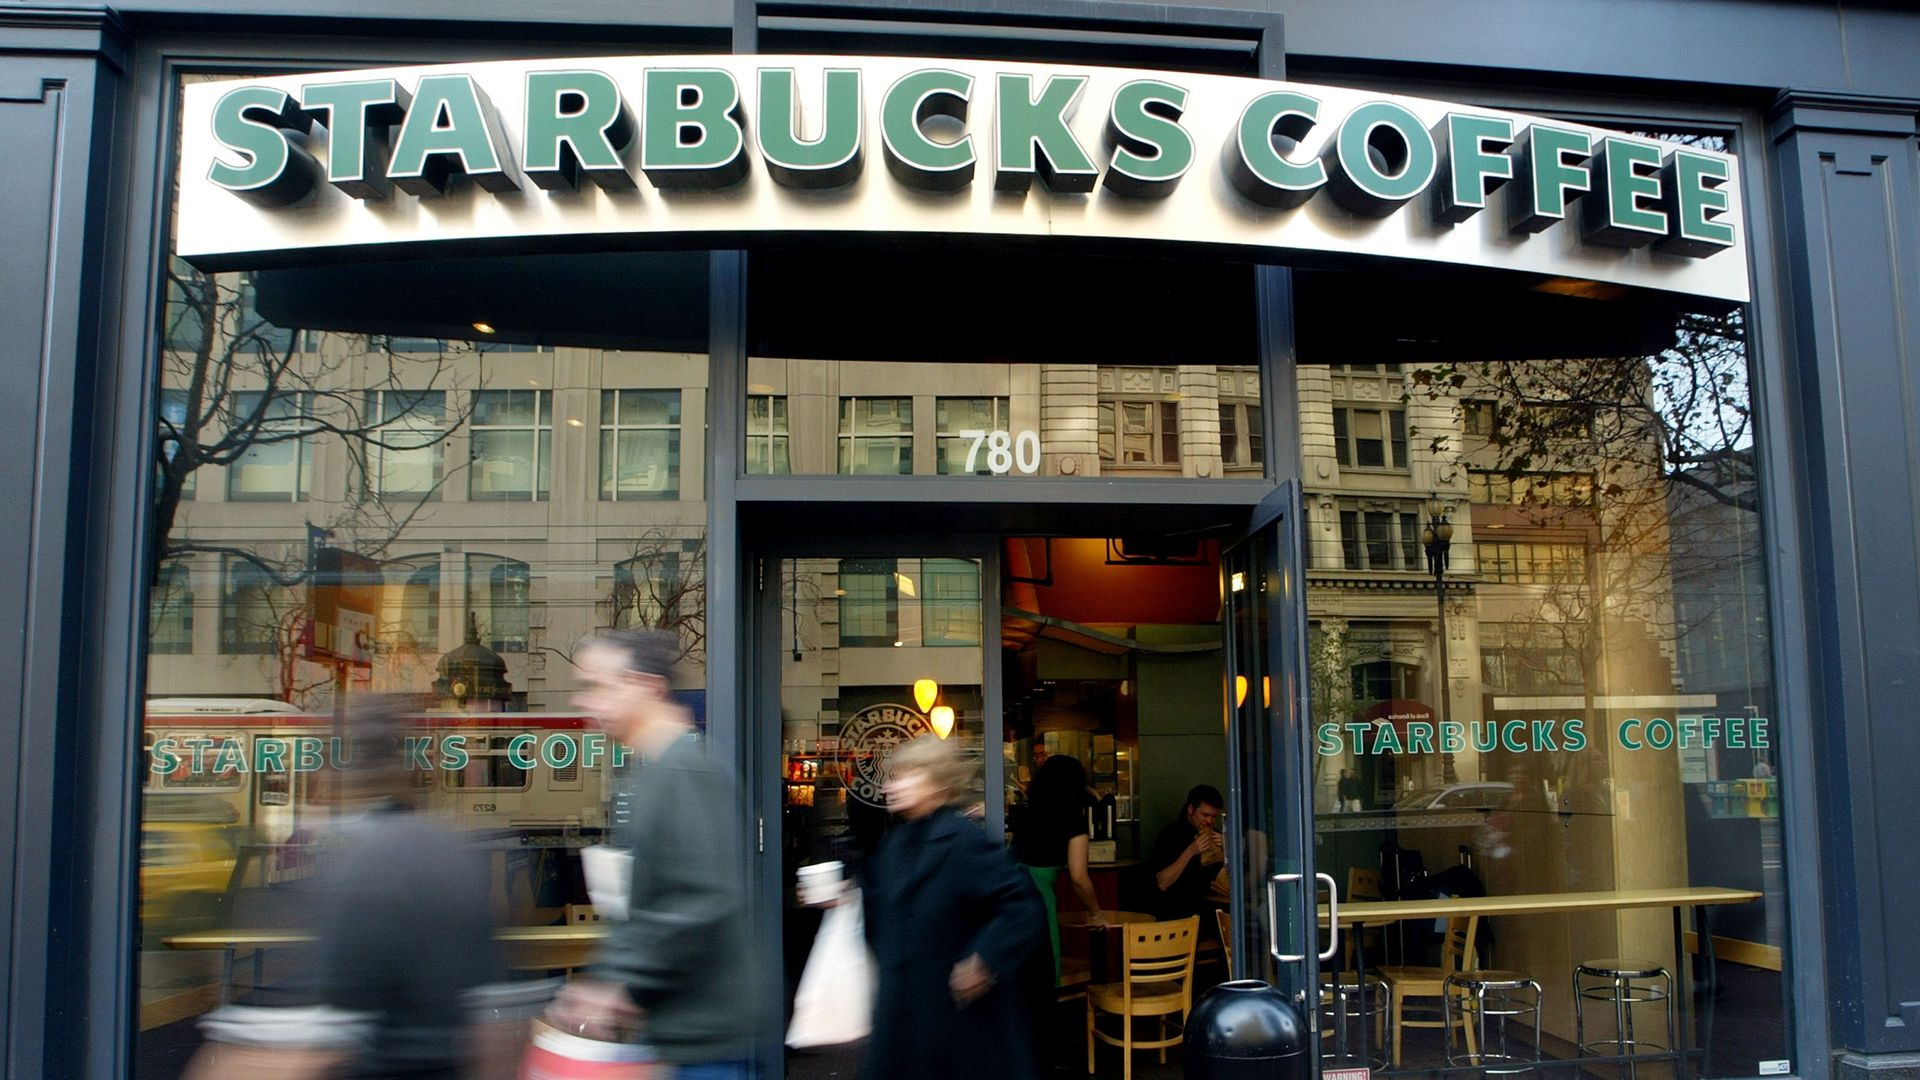 A Starbucks coffee shop in San Francisco, California. Photo: Justin Sullivan/Getty Images